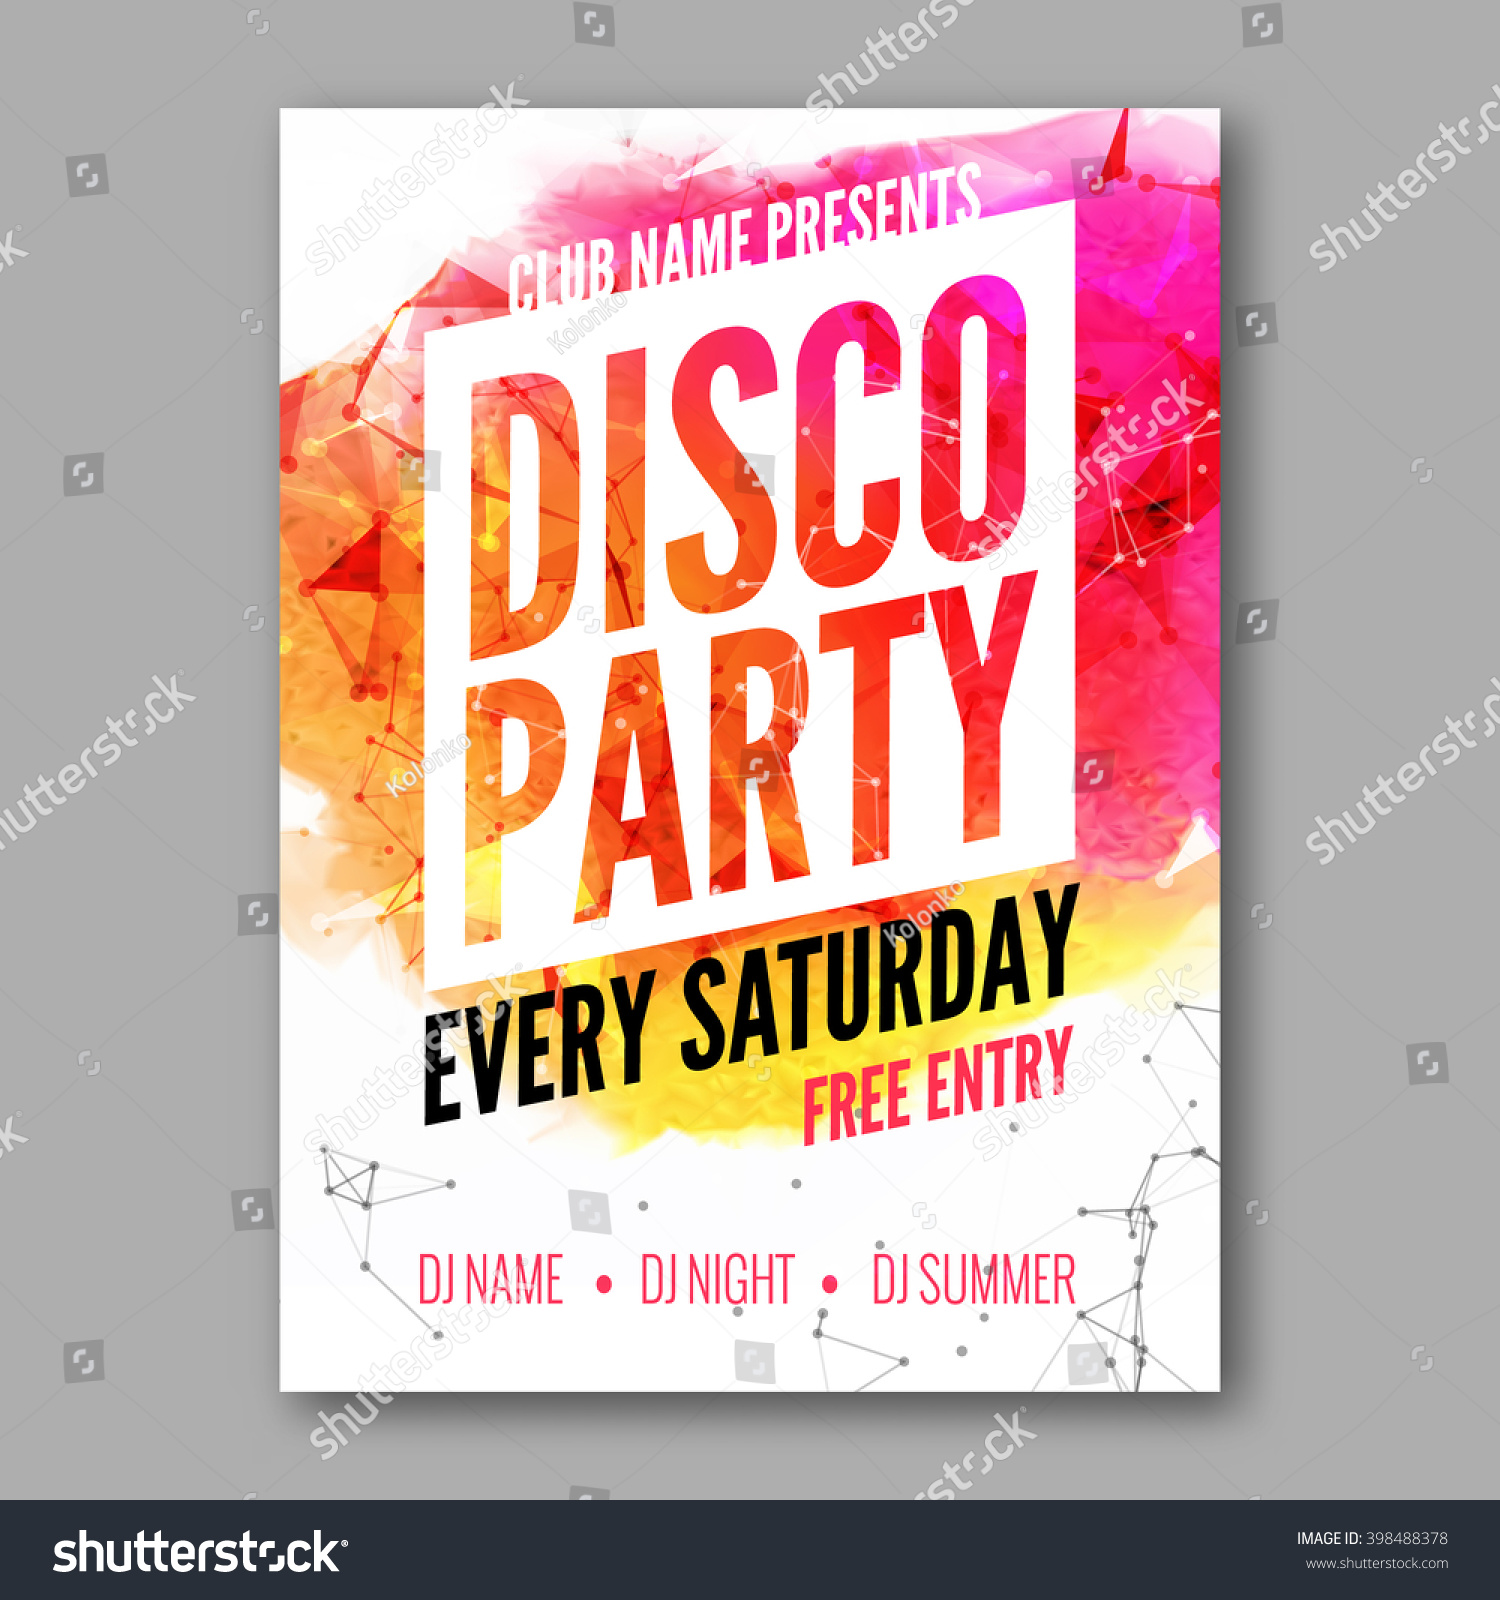 Party Poster Templates Free Iroshfo